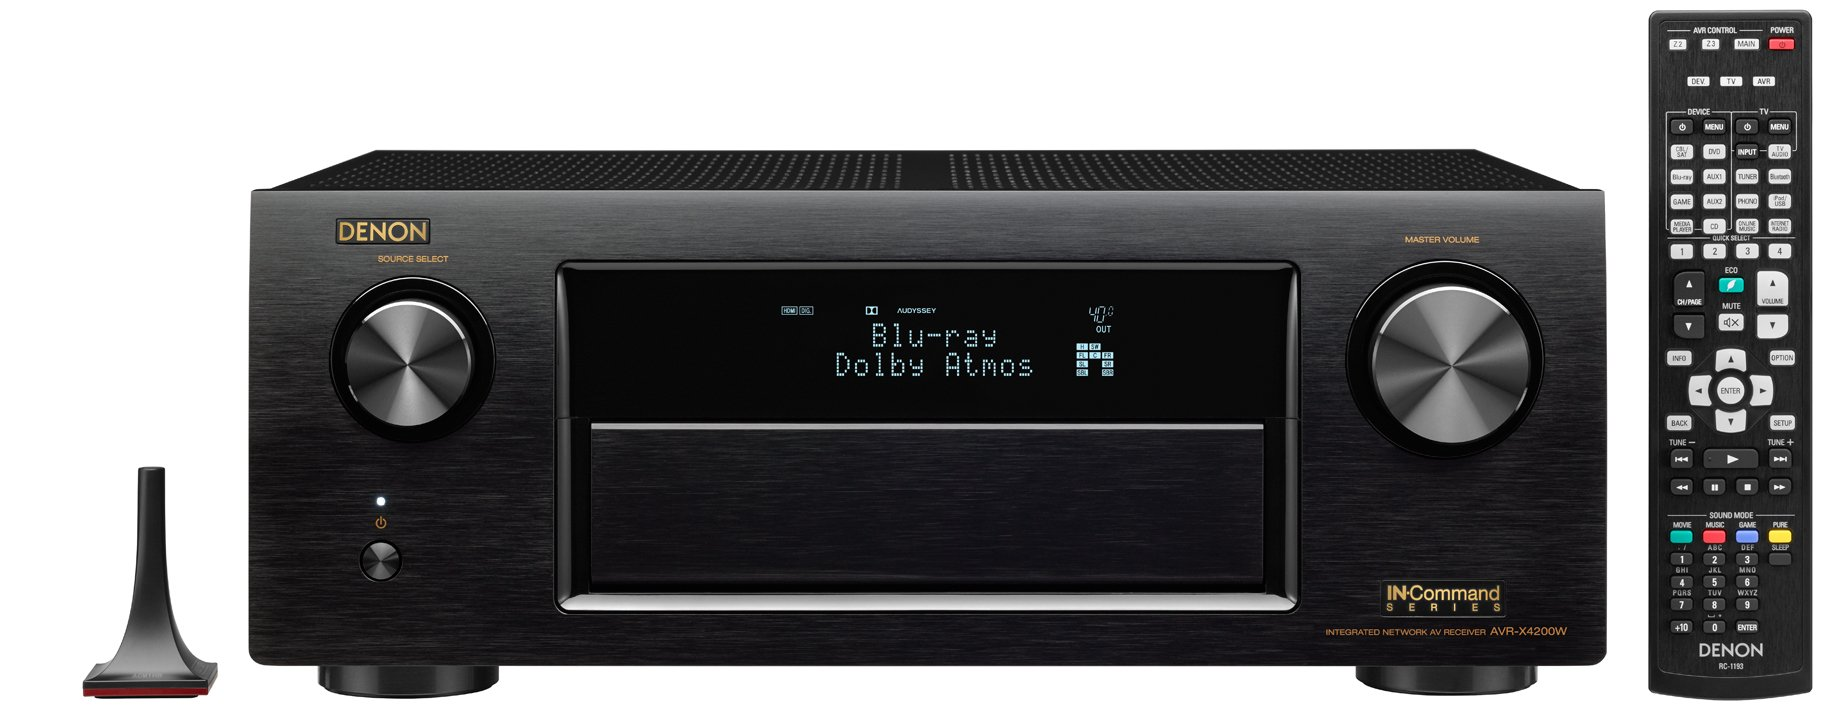 Denon AVRX4200W 7.2 Channel Full 4K Ultra HD AV Receiver with Bluetooth and Wi-Fi